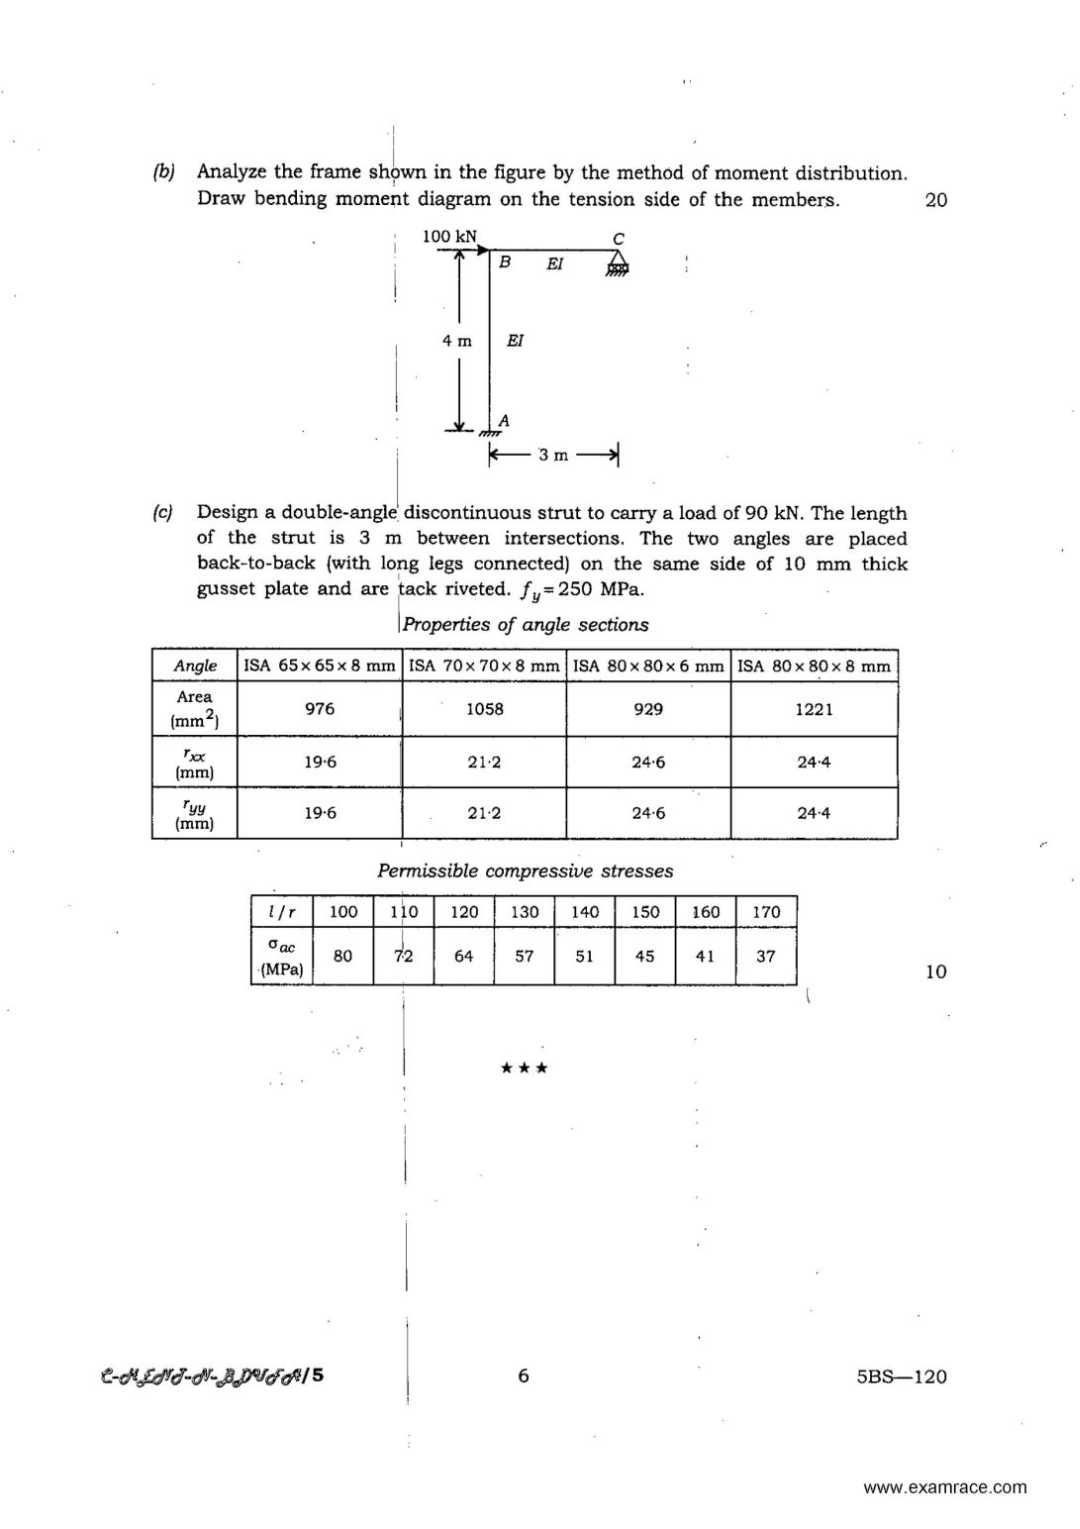 Download Ifs Civil Engineering Paper I Exam 2018 2019 Frame Bending Moment Diagram Upsc Question 2013 On A Soft Glacial Clay Layer 2 M Thick With 45 Liquid Limit The Pressure Intensity Was